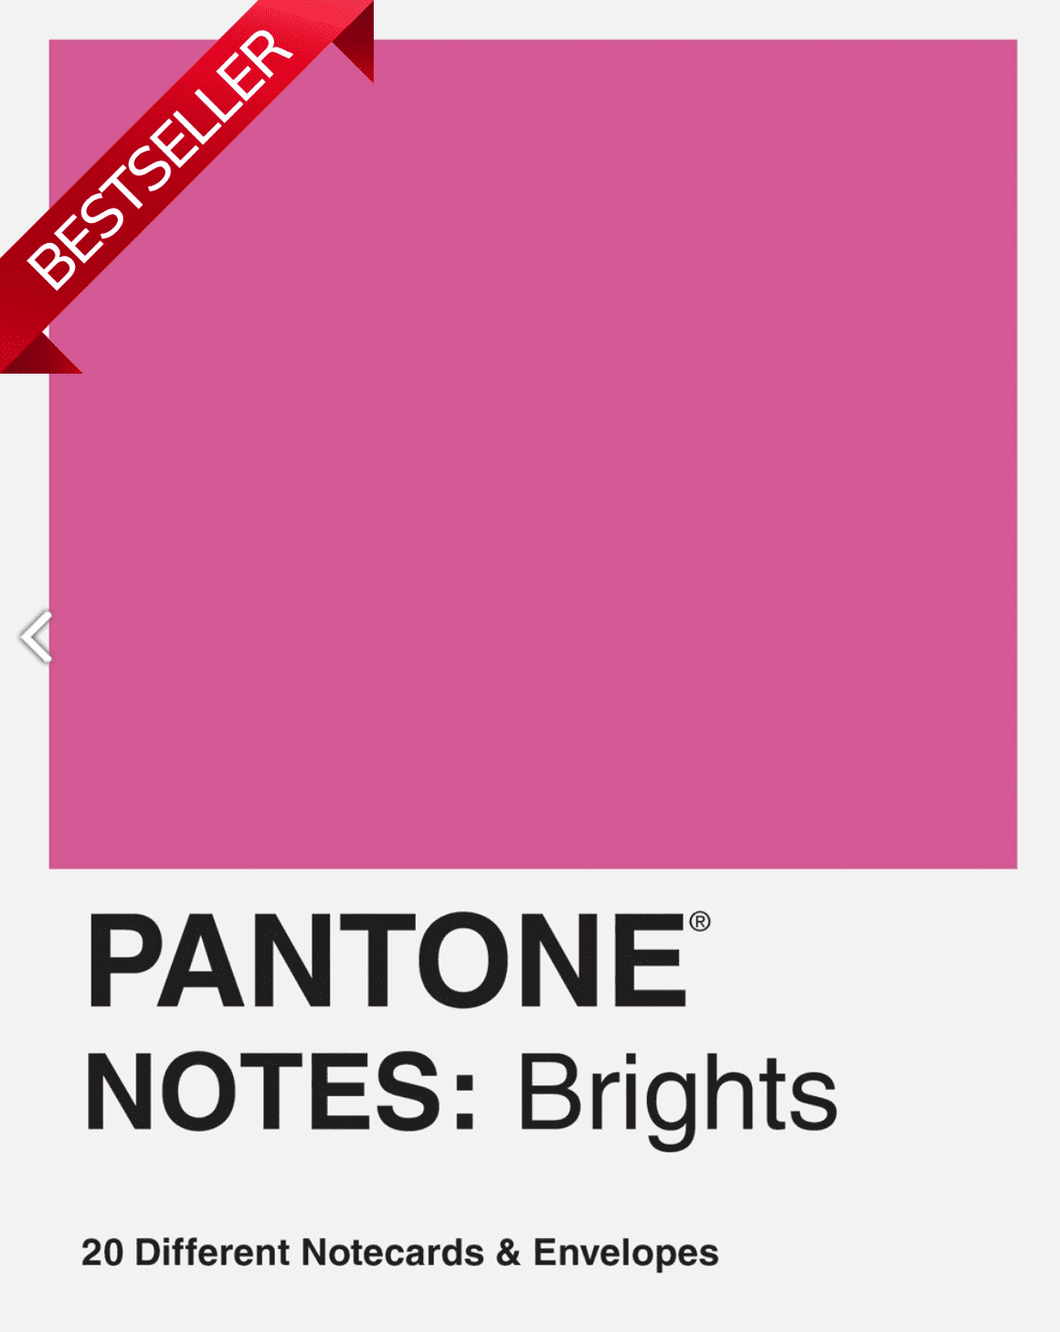 Pantone Notes: Brights : 20 Different Notecards & Envelopes - Adele Gilani Art Gallery